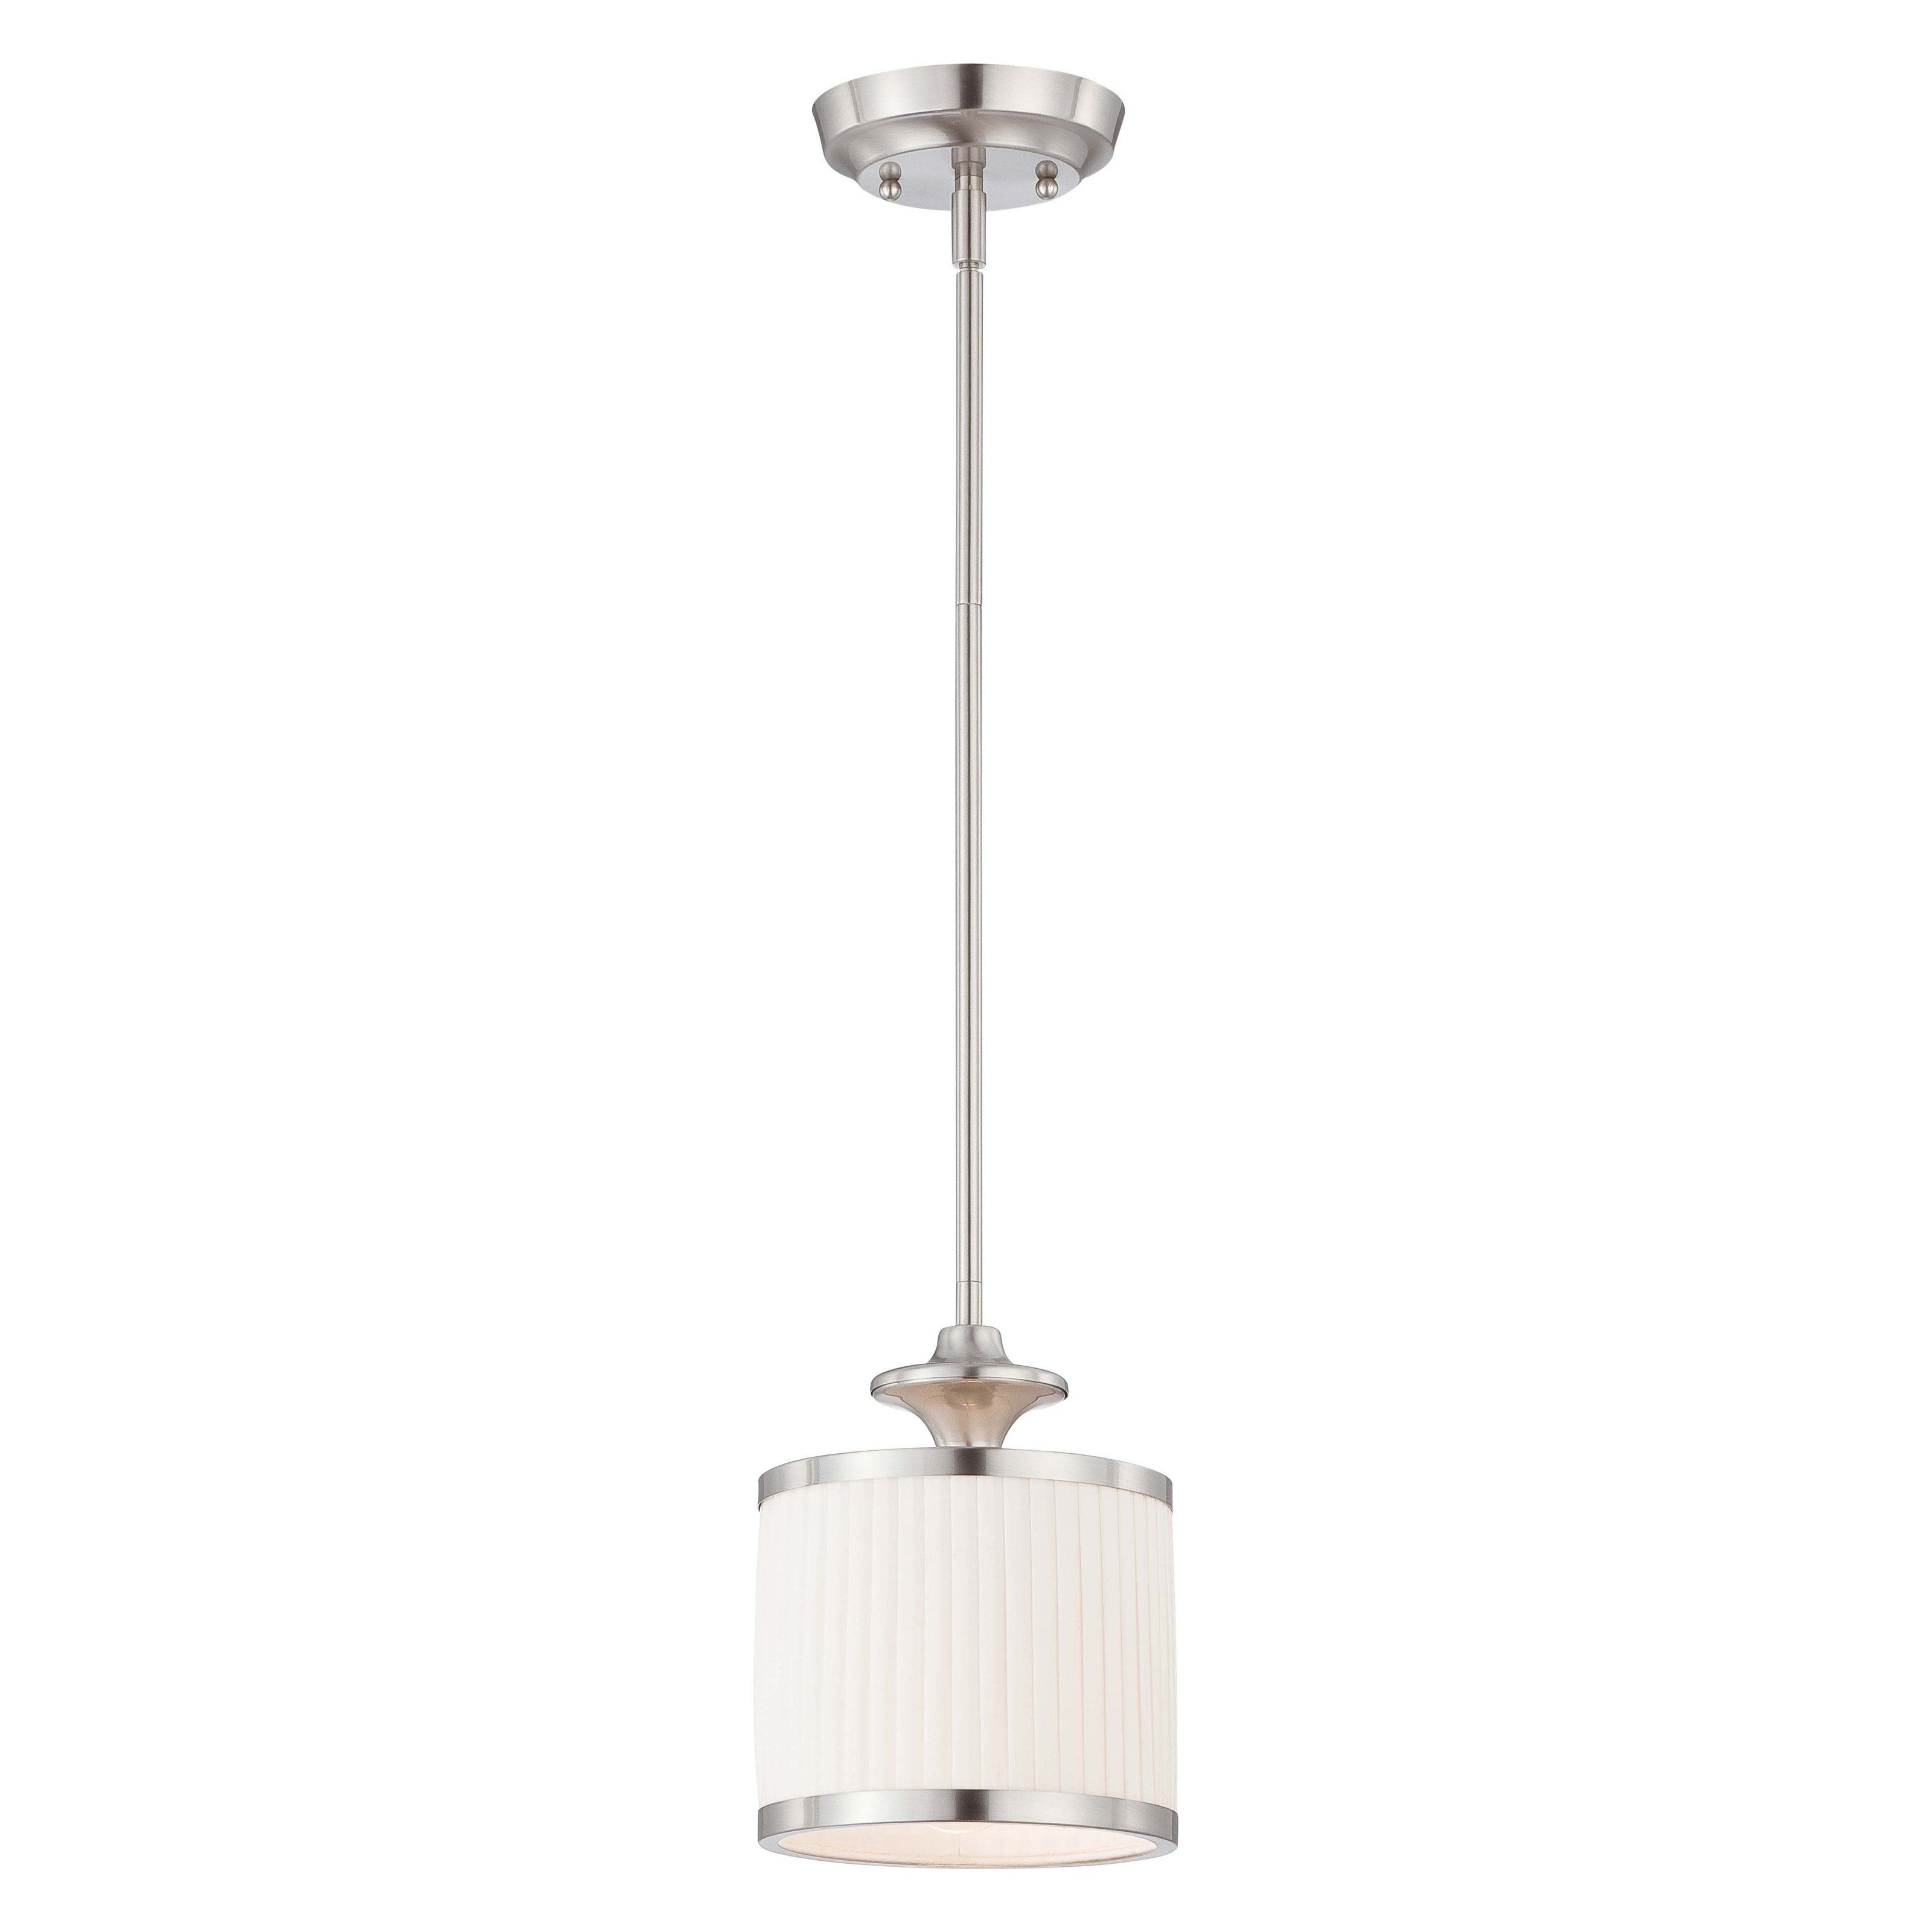 Nuvo candice light mini pendant w in brushed nickel